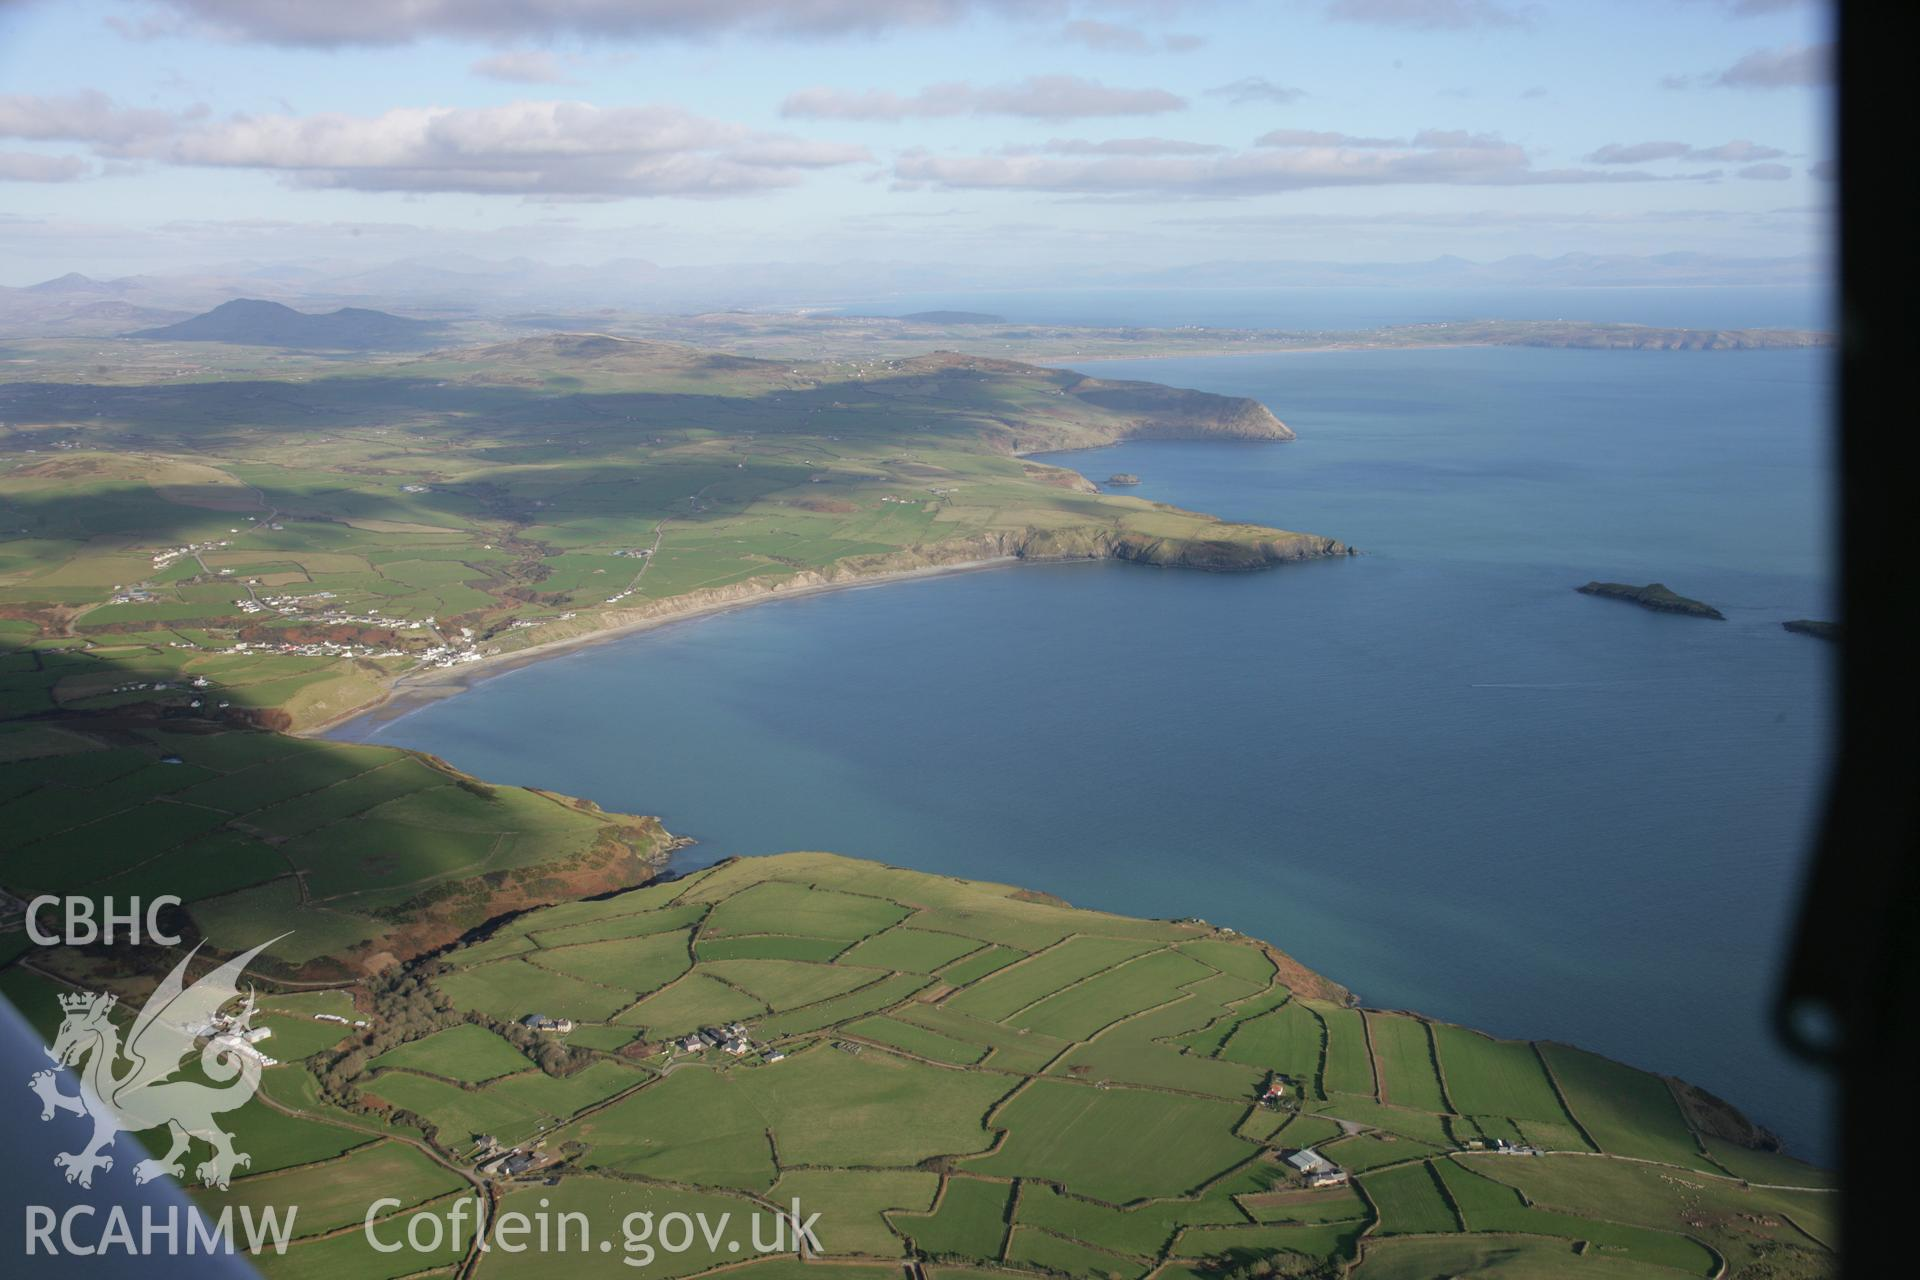 RCAHMW colour oblique aerial photograph of Aberdaron and the landscape from the west. Taken on 09 February 2006 by Toby Driver.